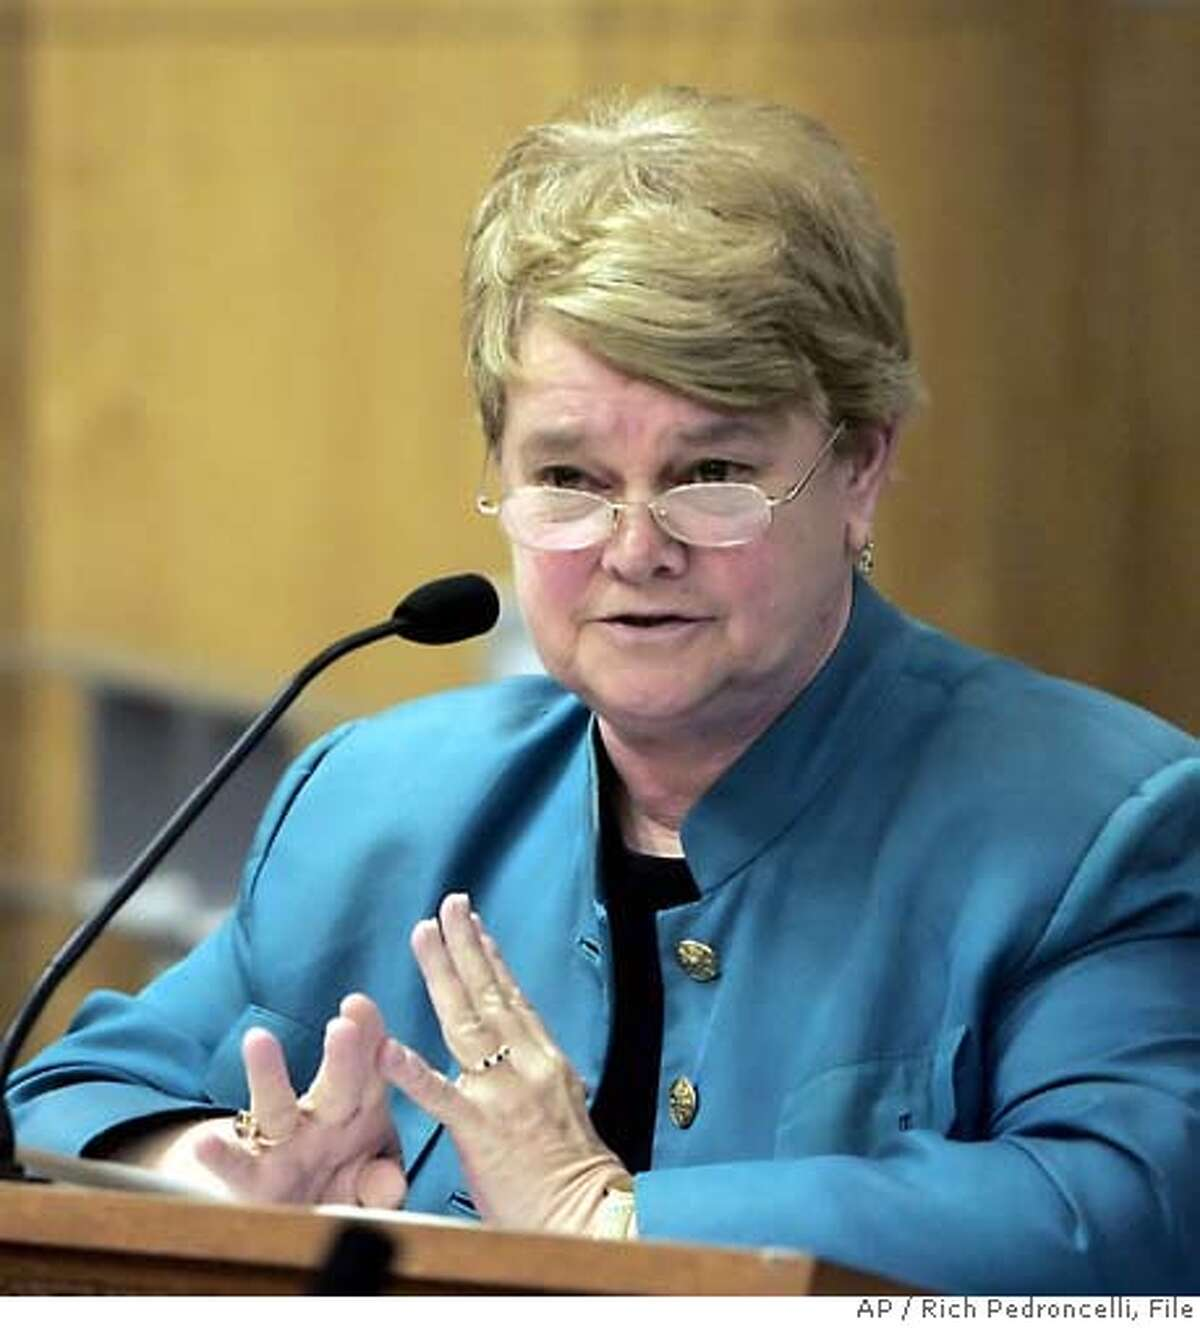 ** DELETES VOTE TOTALS ** State Sen. Sheila Kuhl, D-Santa Monica, urges members of the Senate Education Committee to approve her measure that would add sexual orientation to the list of criteria included in California textbooks, during a hearing at the Capitol in Sacramento, Calif., Wednesday, May 3, 2006. Kuehl's bill would require state textbooks and other social science materials to discuss the contributions that gays, lesbians, bisexuals and transgender people have made to the state and nation's economy, politics and society. The committee approved the bill. (AP Photo/Rich Pedroncelli) Ran on: 05-12-2006 Ran on: 05-12-2006 Ran on: 05-12-2006 Ran on: 05-12-2006 DELETES VOTE TOTALS